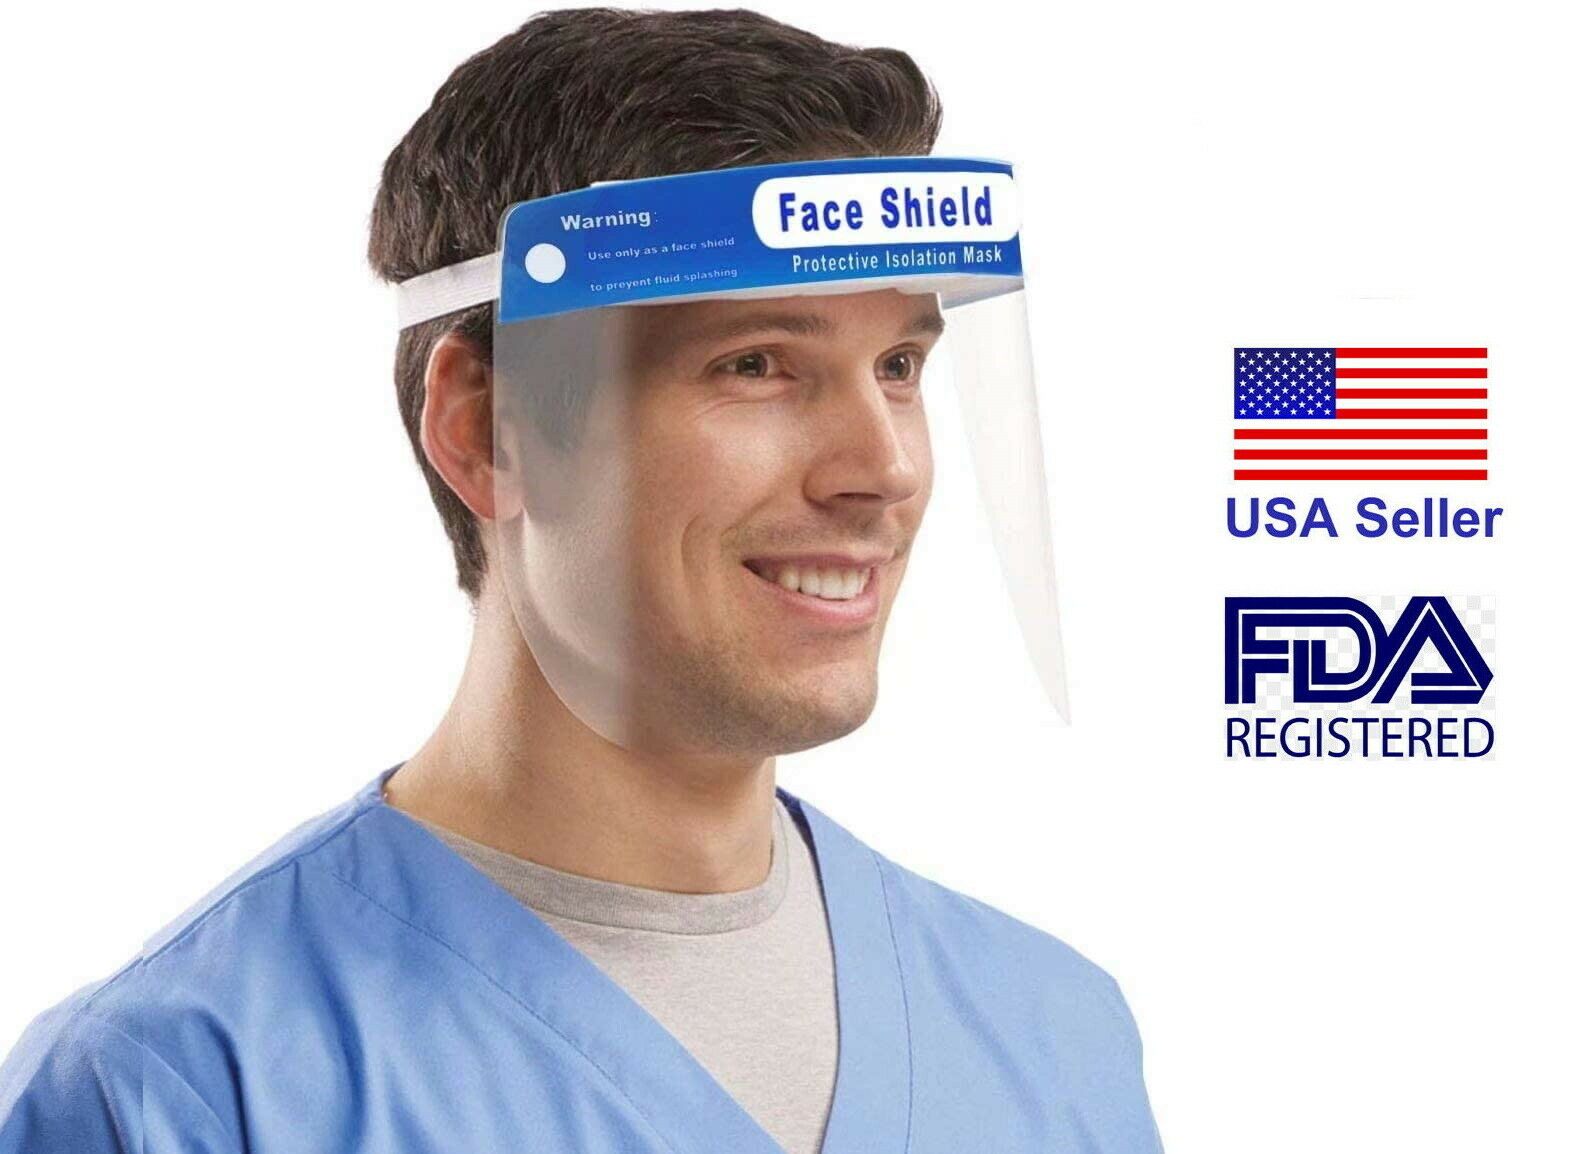 01Pcs Full Face Shield with Dust-Proof Glasses Protector Work Industry Dental